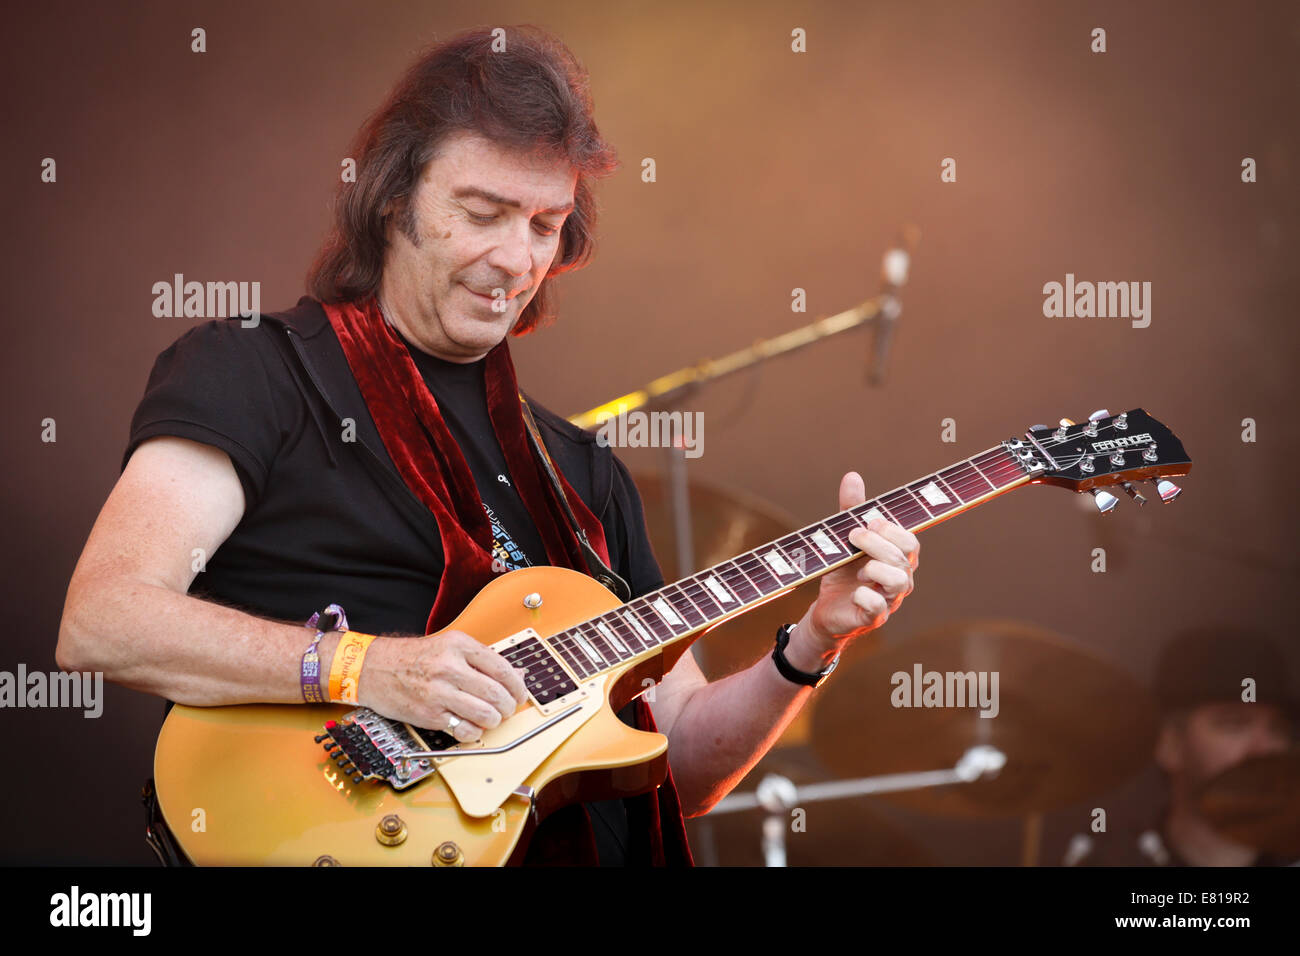 Steve Hackett, former lead guitarist with Genesis, playing guitar at Fairport's Cropredy Festival - Stock Image